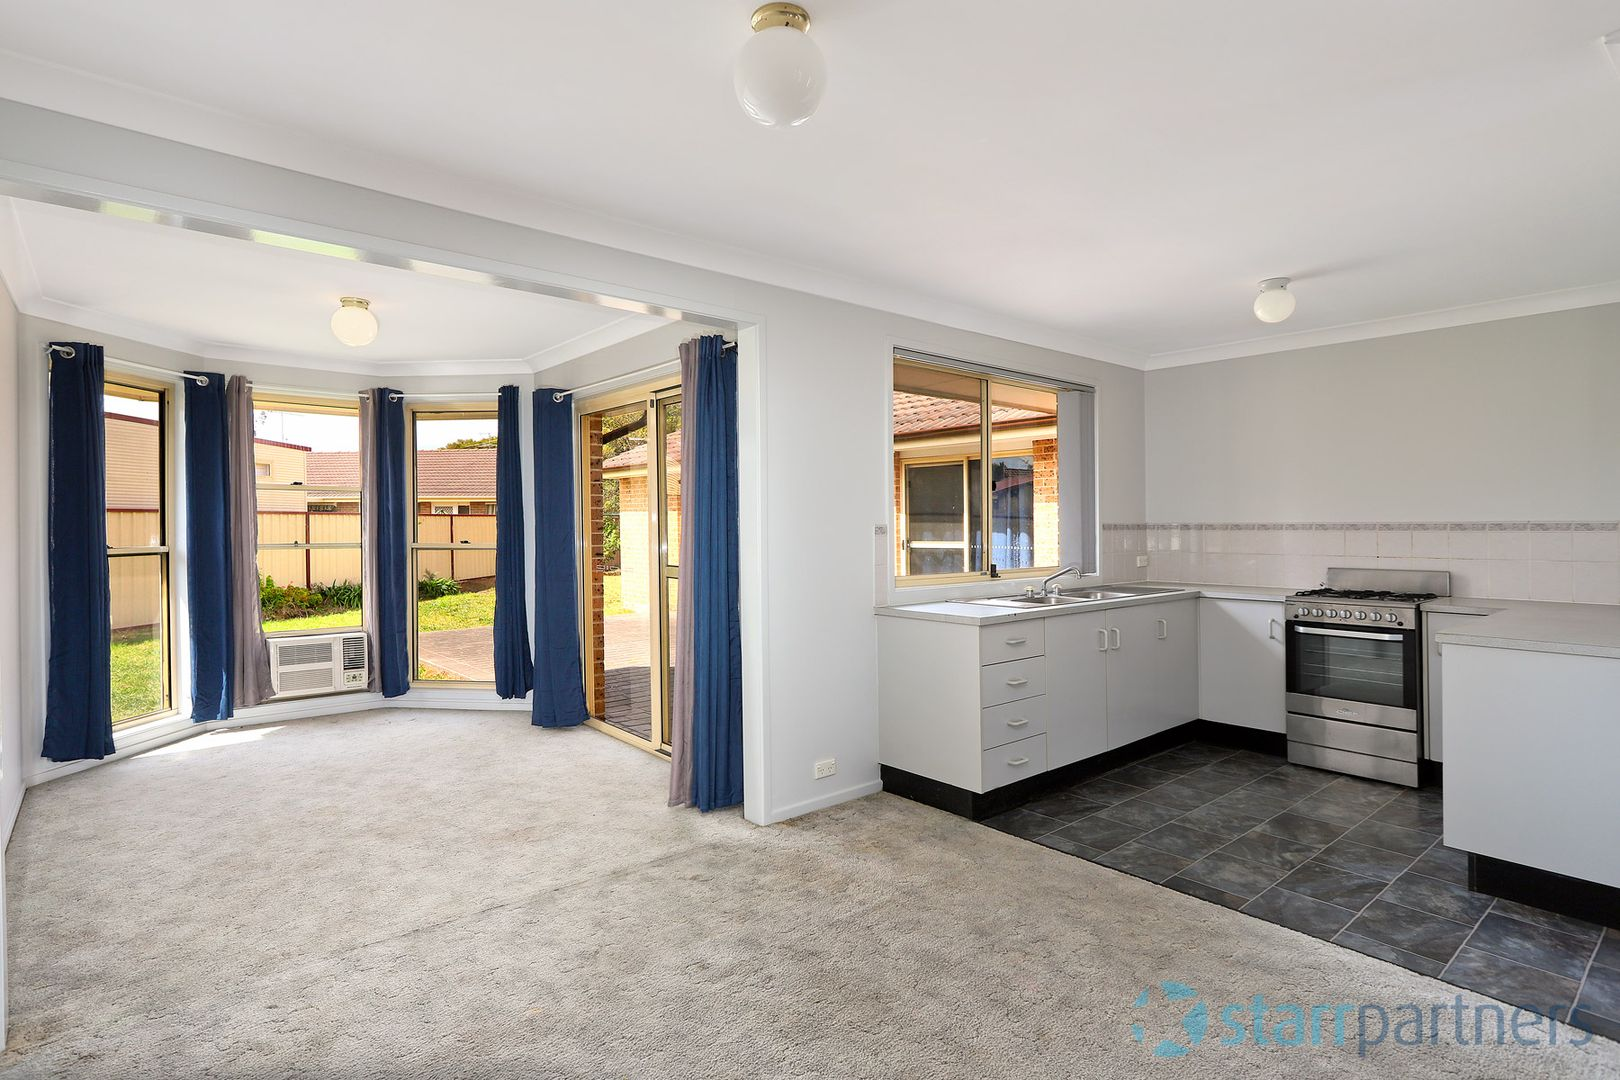 15 Acres Place, Bligh Park NSW 2756, Image 1